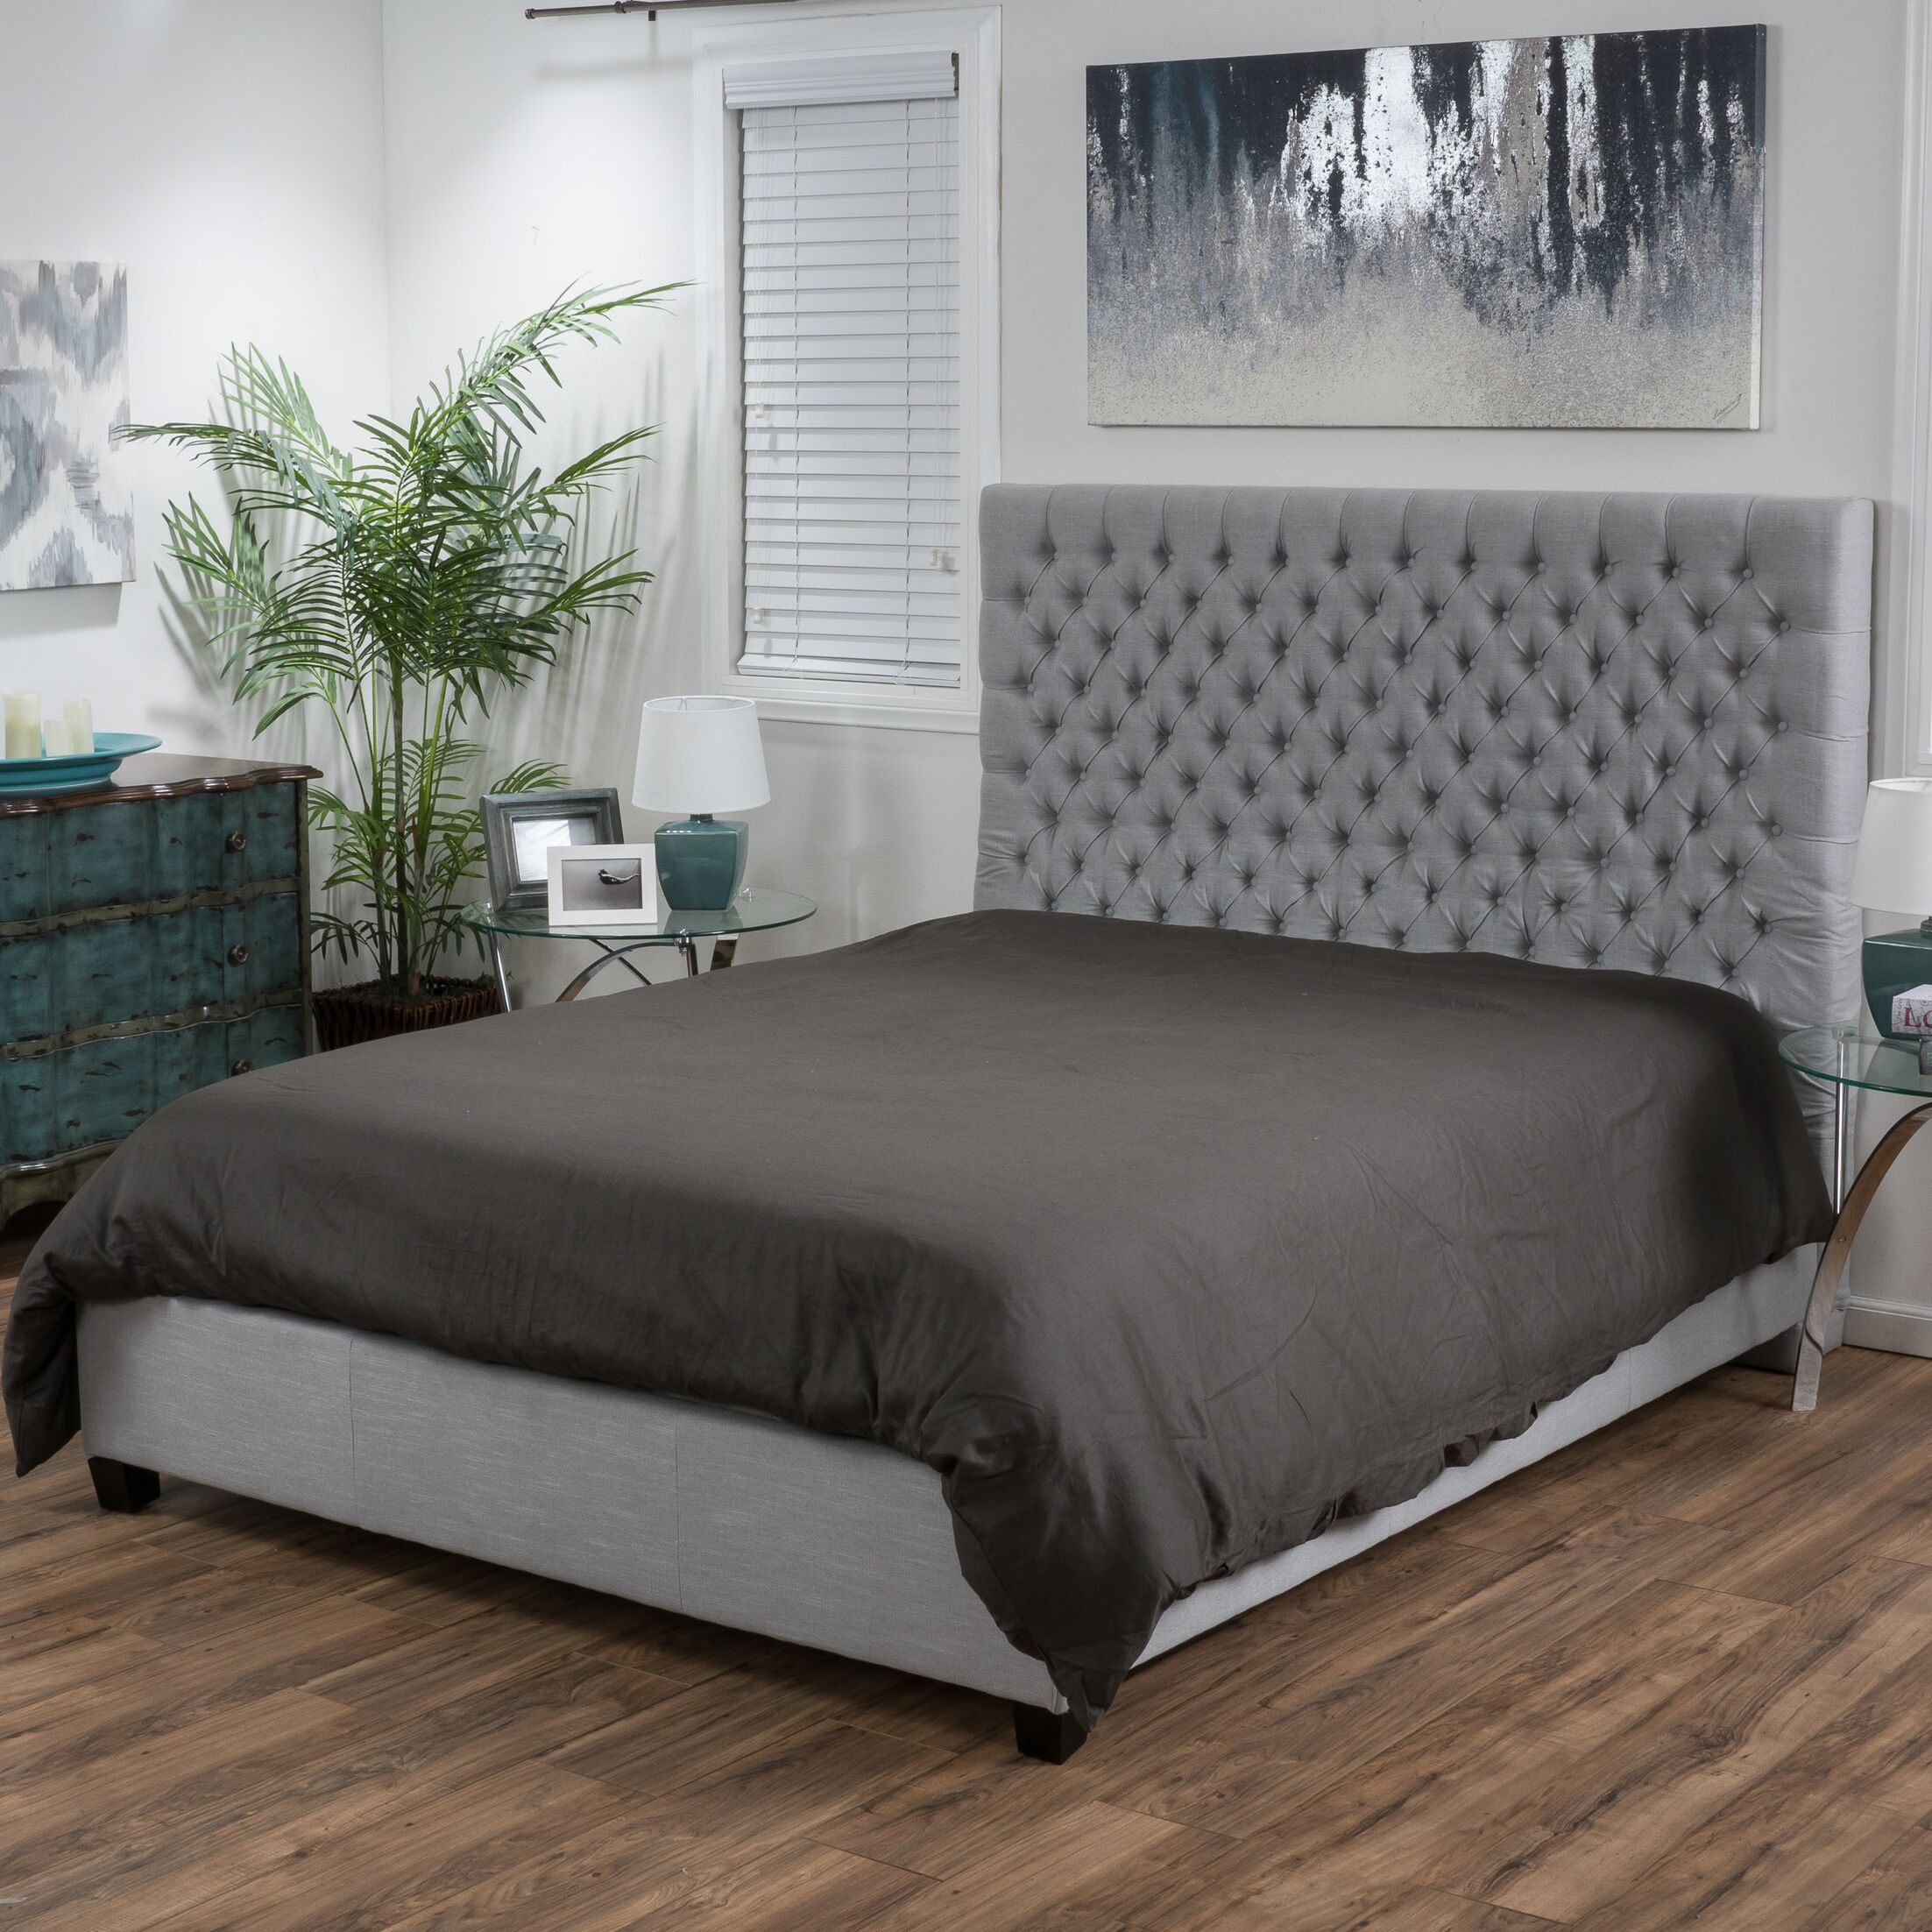 Fresnes Upholstered Panel Bed Size: King, Headboard Color: Light Gray